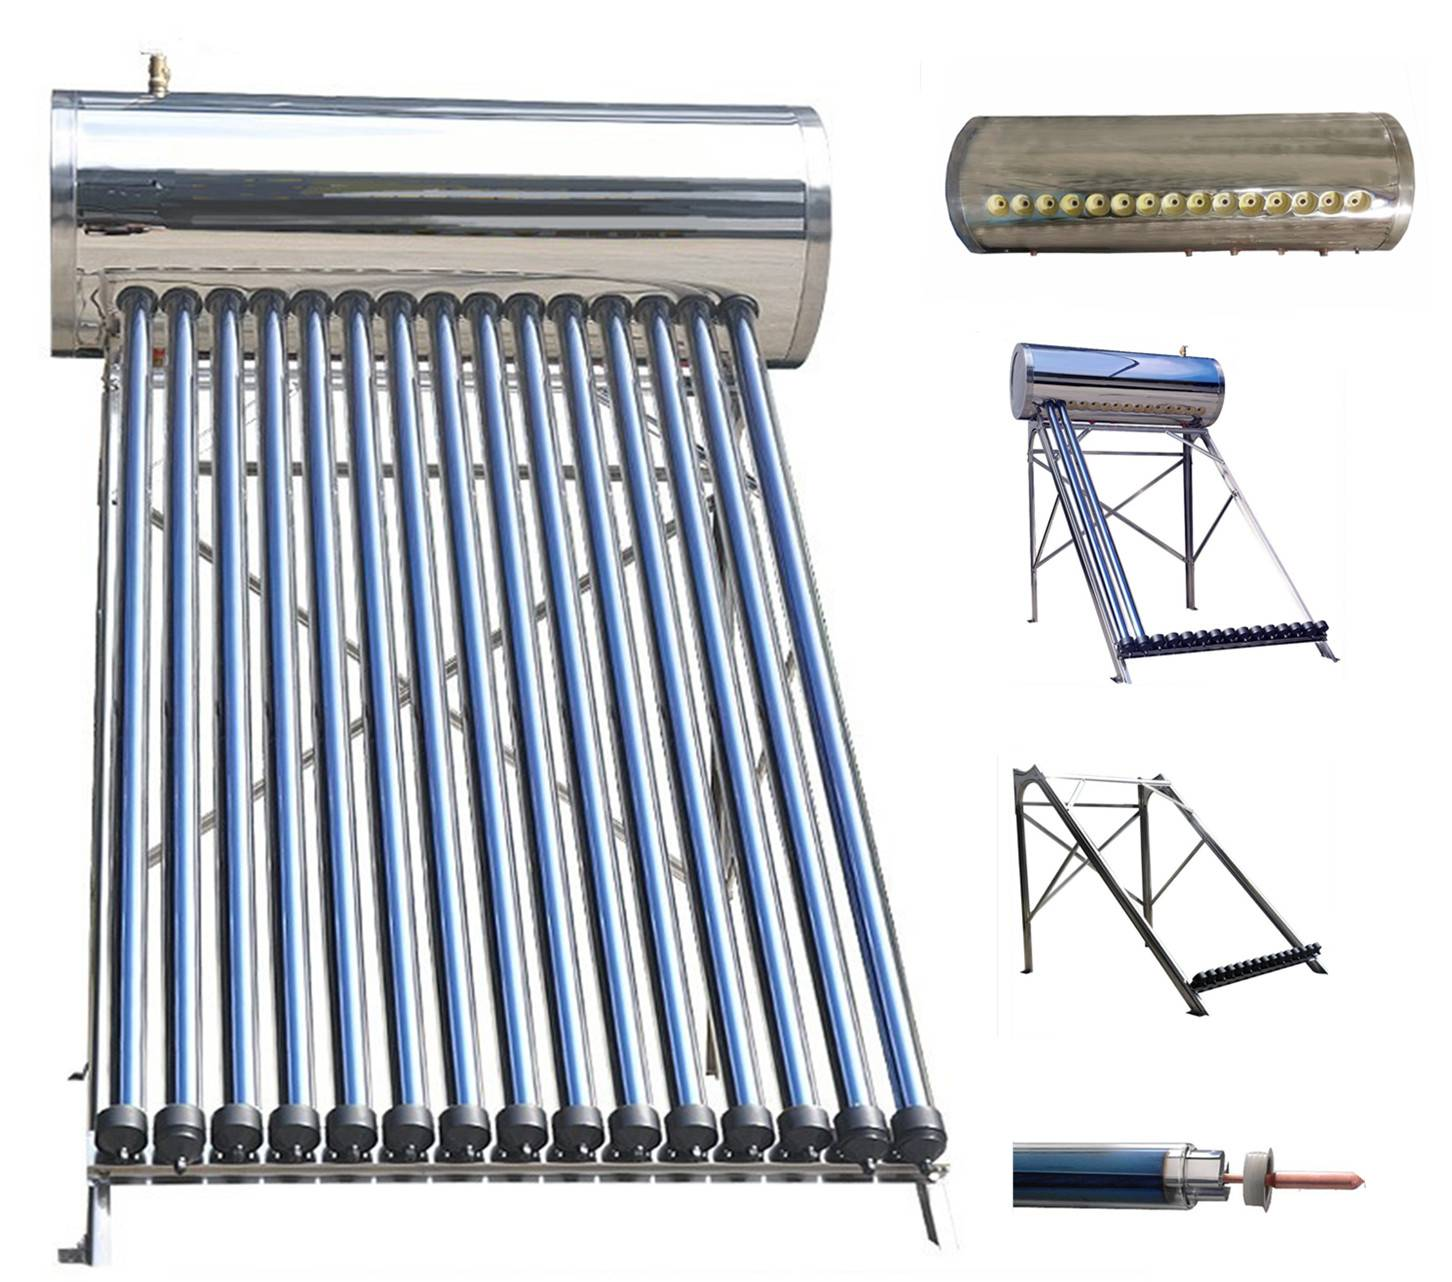 Compact Pressurized Anticorrosion Solar Water Heater in 304 Stainless Steel